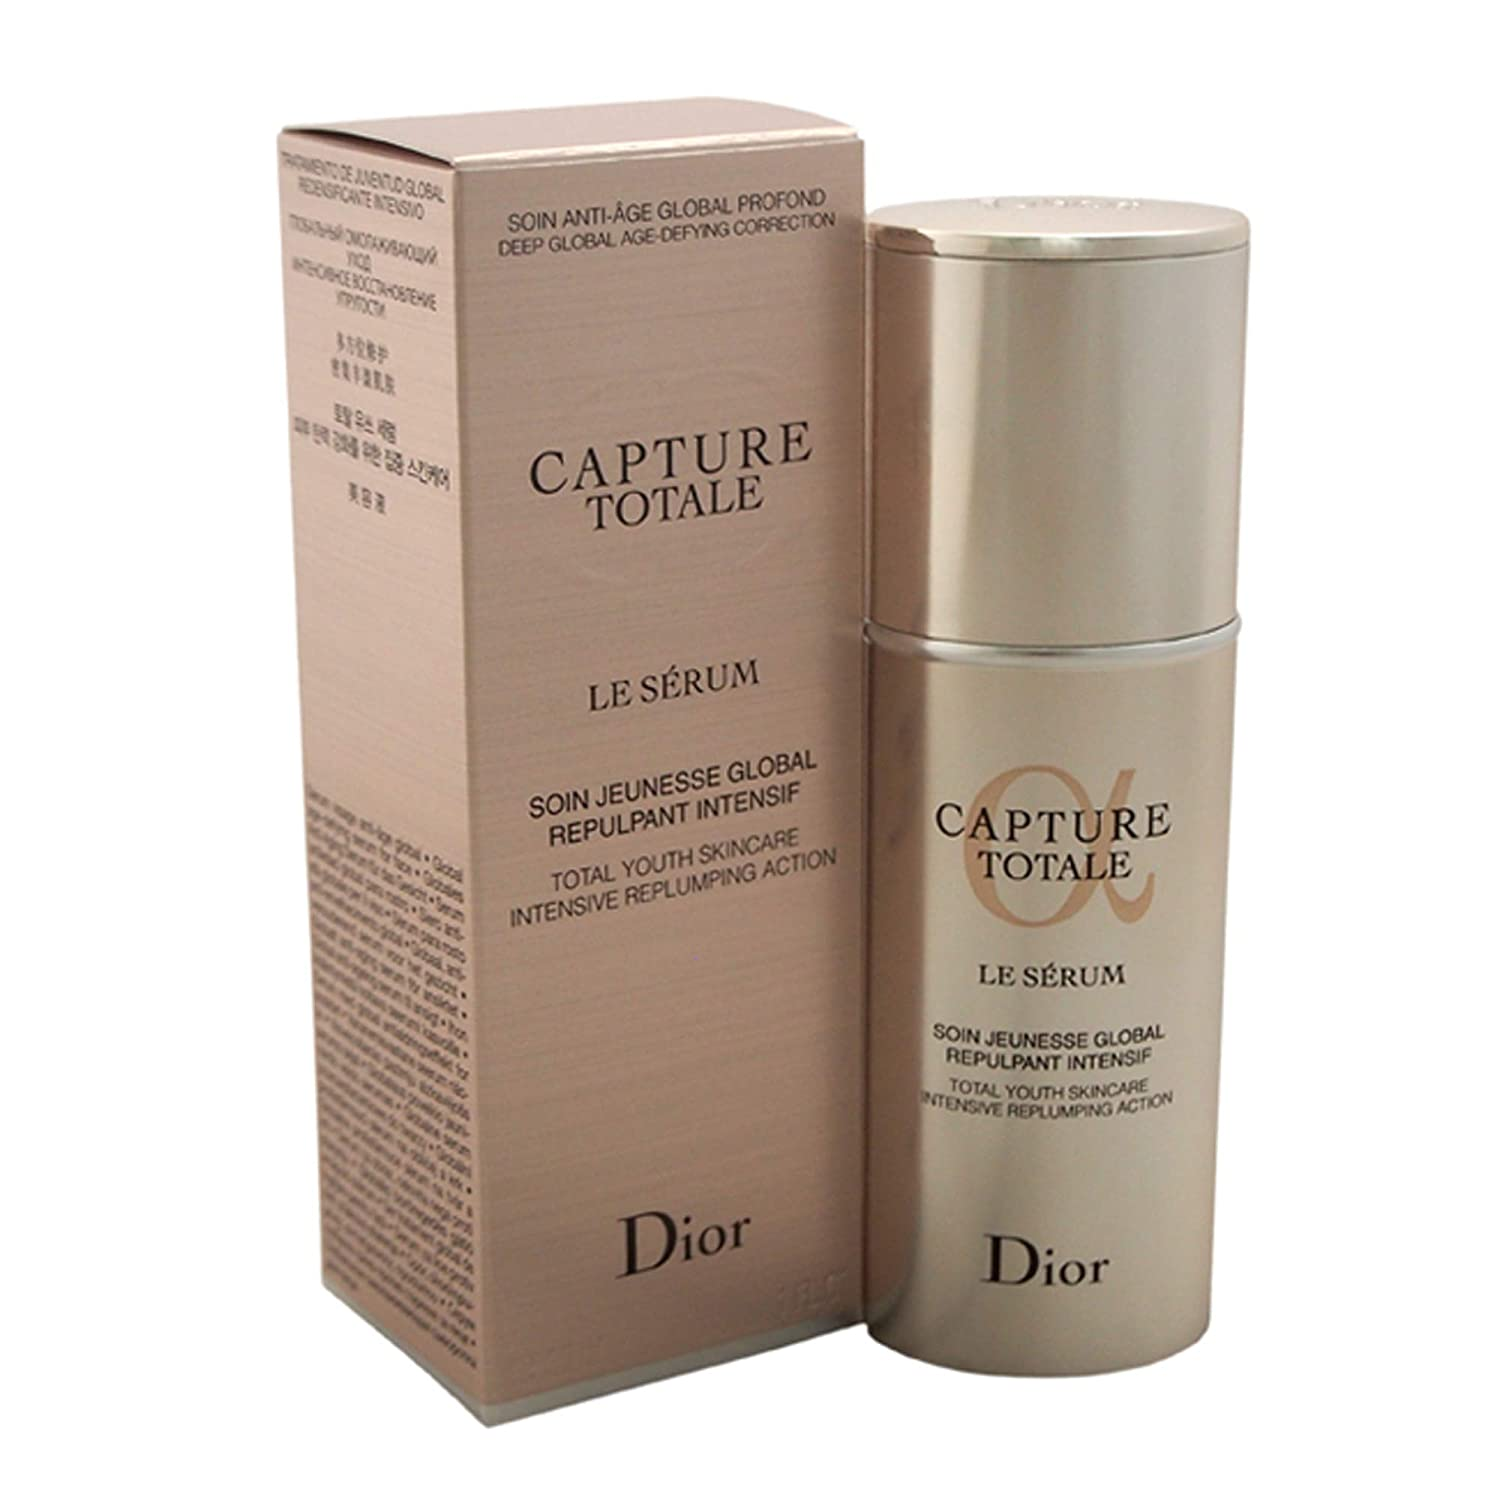 3be110aeda DIOR Capture Totale Le Sérum - Total youth skincare intensive replumping  action 30ml